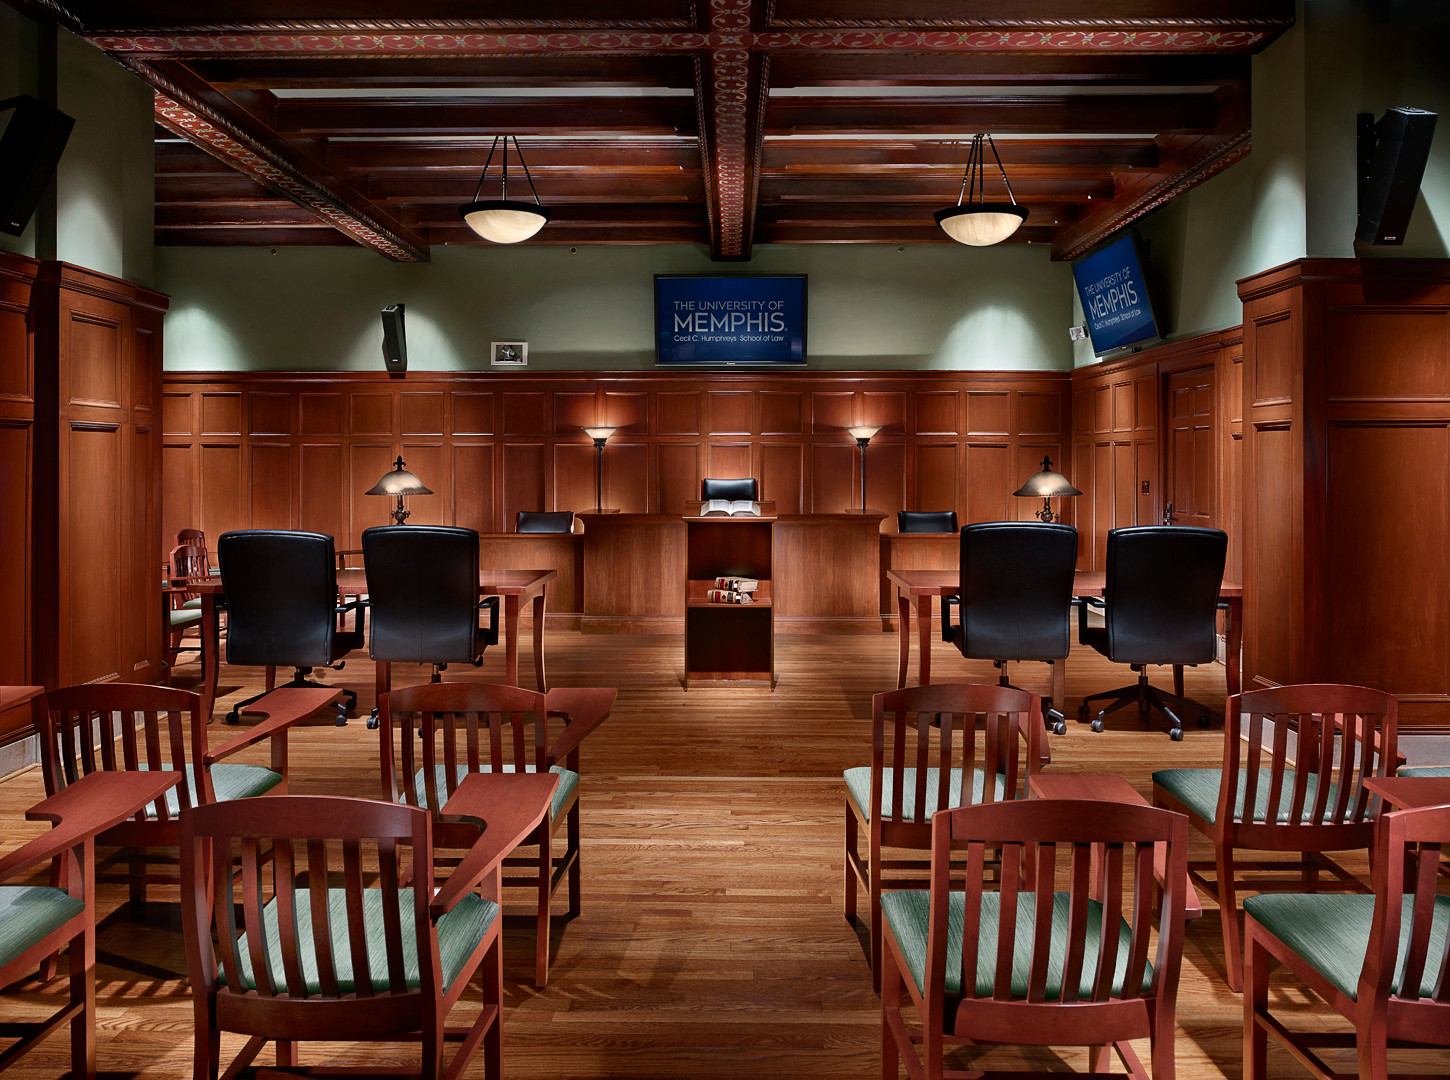 UofM Law School Courtroom